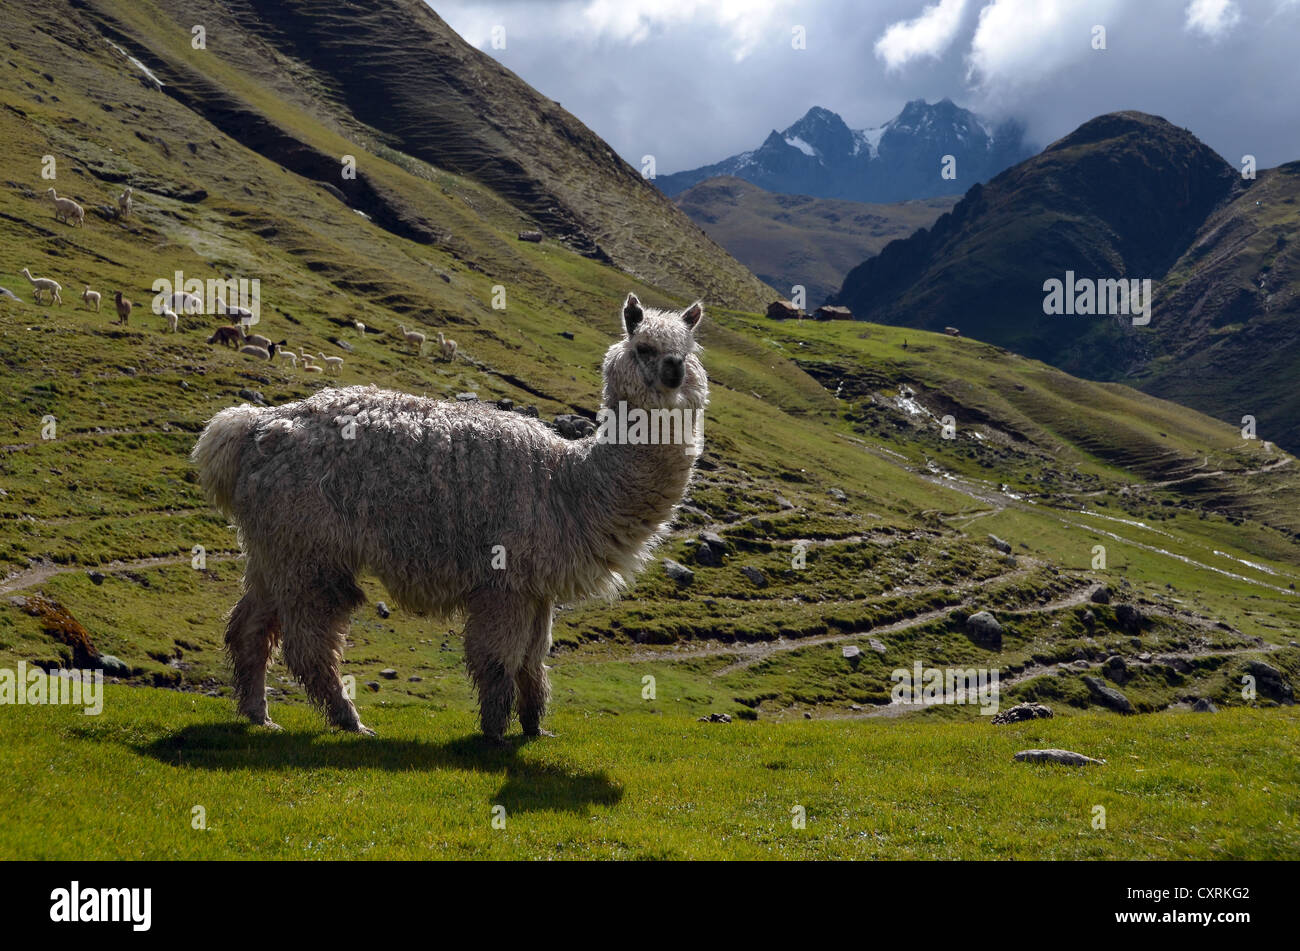 Mountain living near cusco peru royalty free stock photo -  Mountain Near Cusco Peru Llama Llama Glama In Front Of Mountain Scenery In The High Andes Mountains